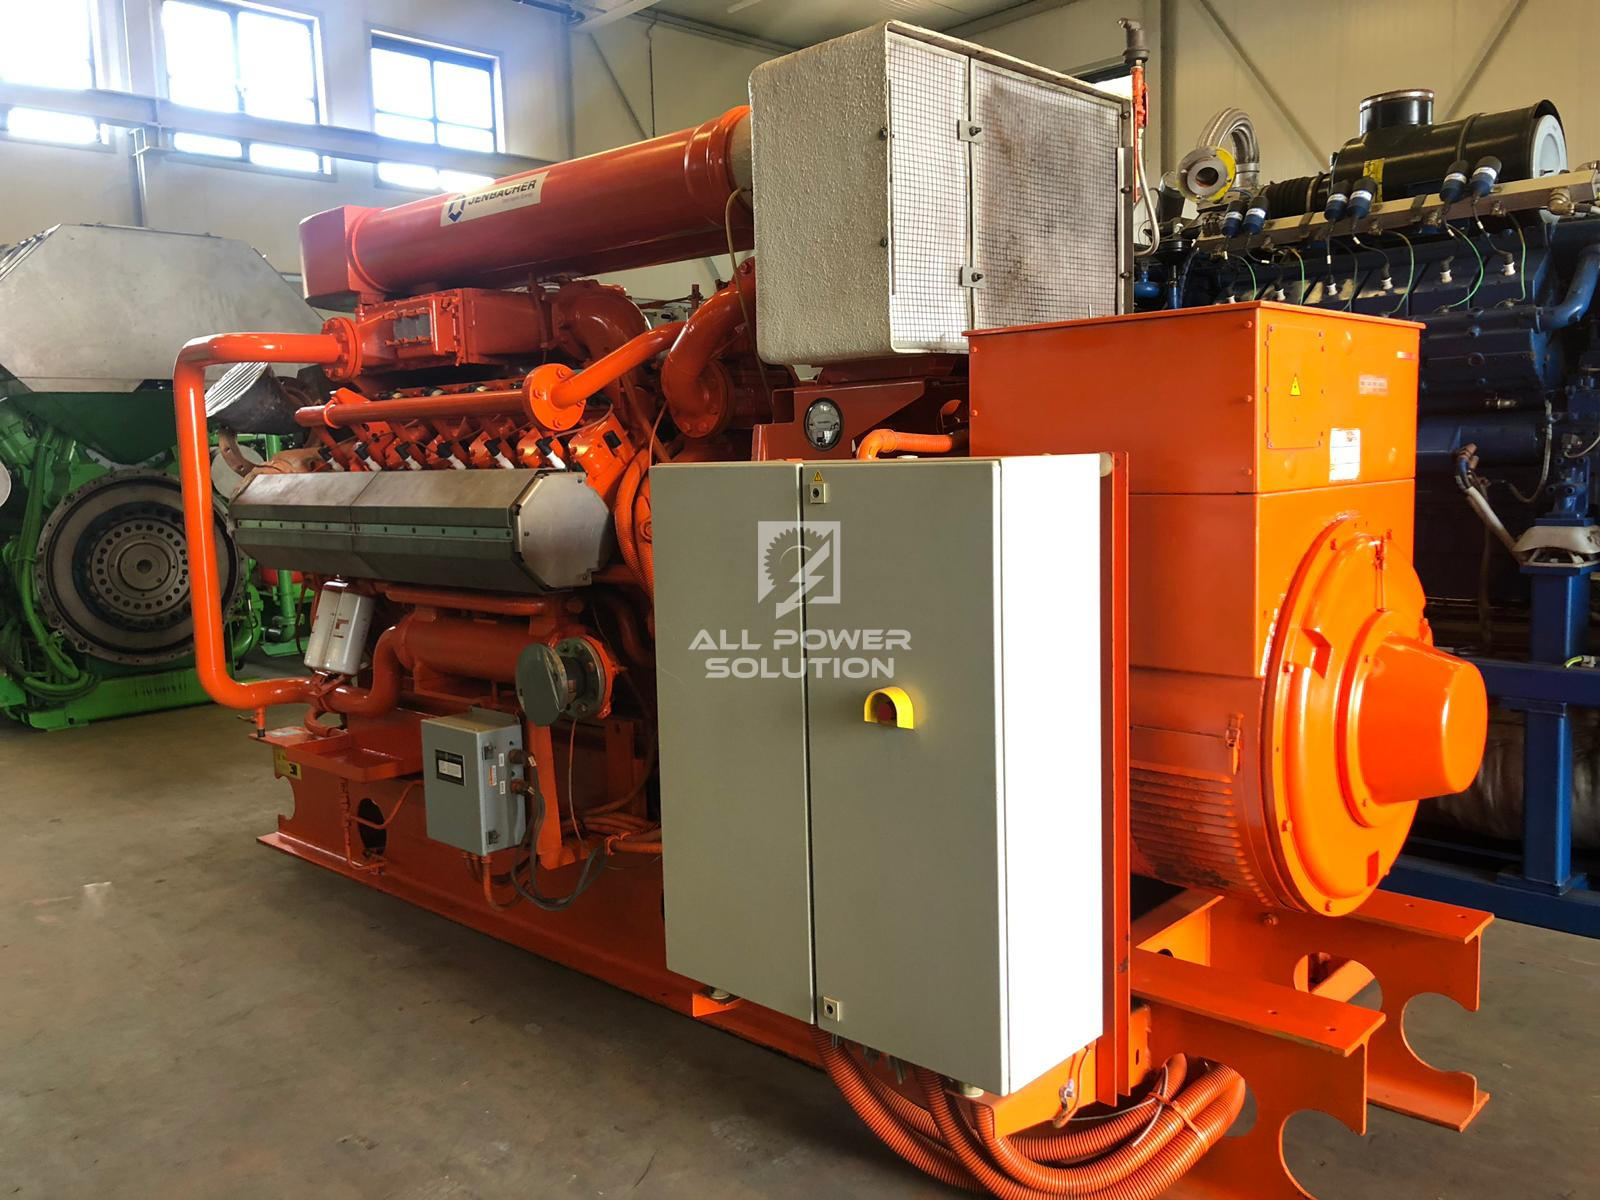 Used gas generators for sale | All Power Solution